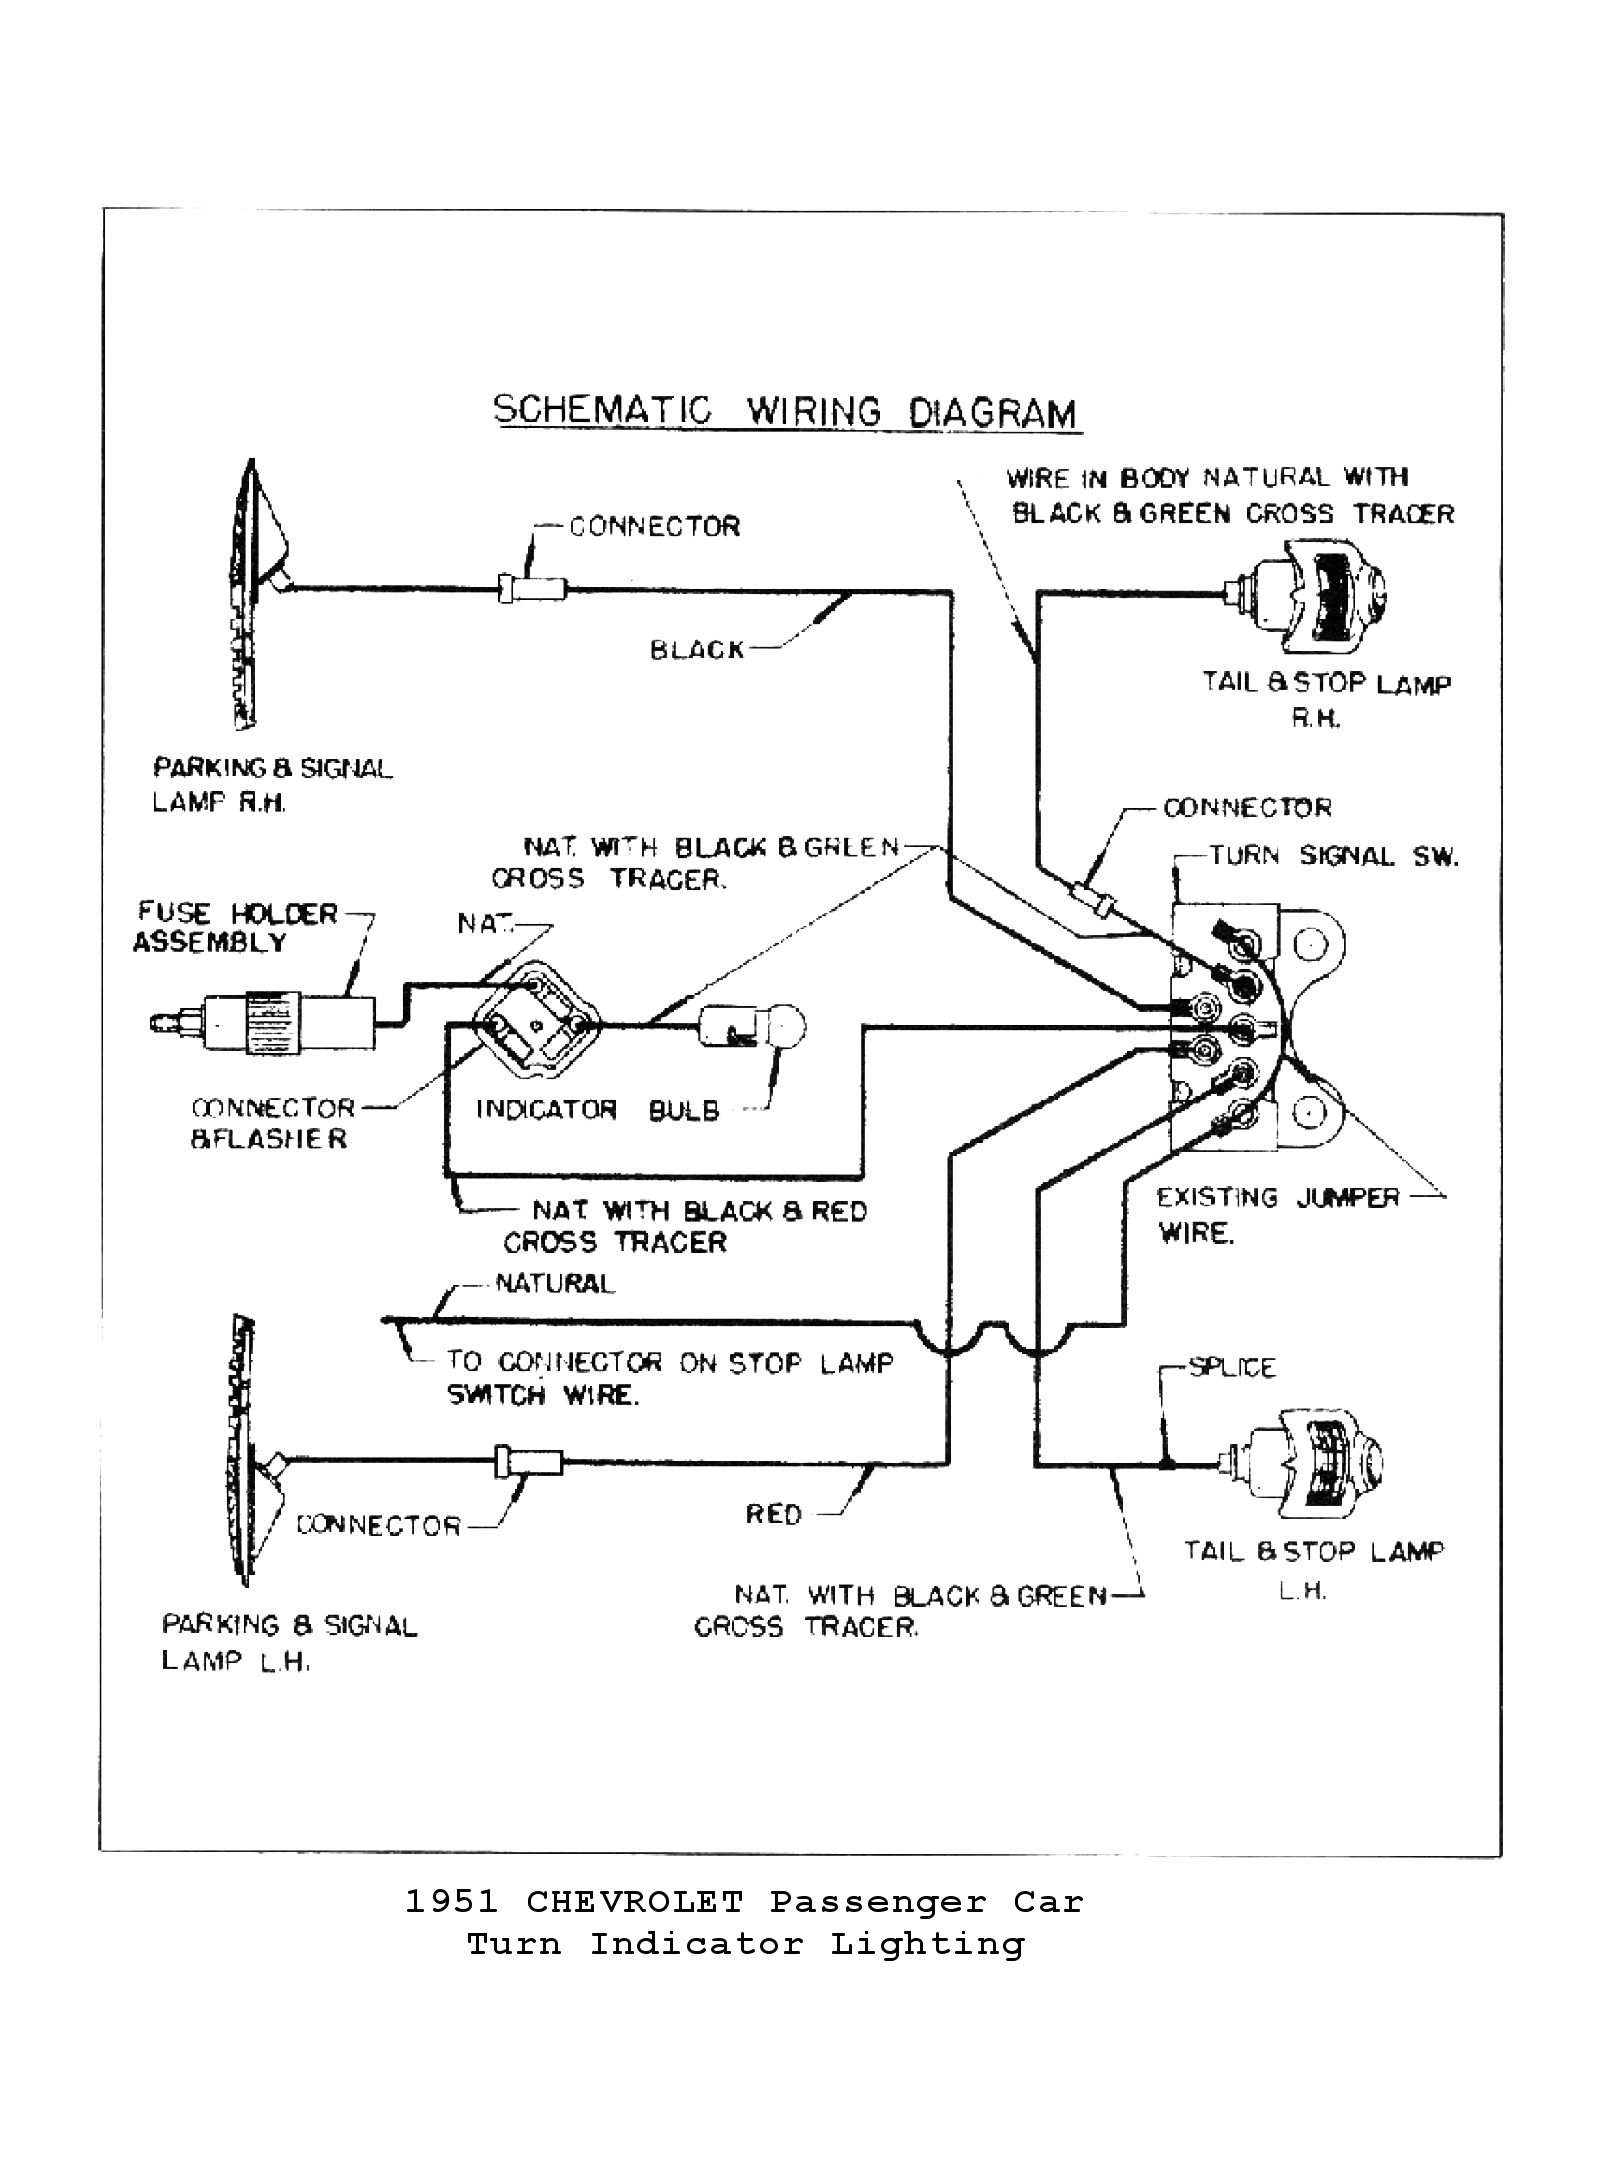 1954 Chevy 3100 Truck Wiring Harness Diagram Cj2a Wire Harness Routing For Wiring Diagram Schematics